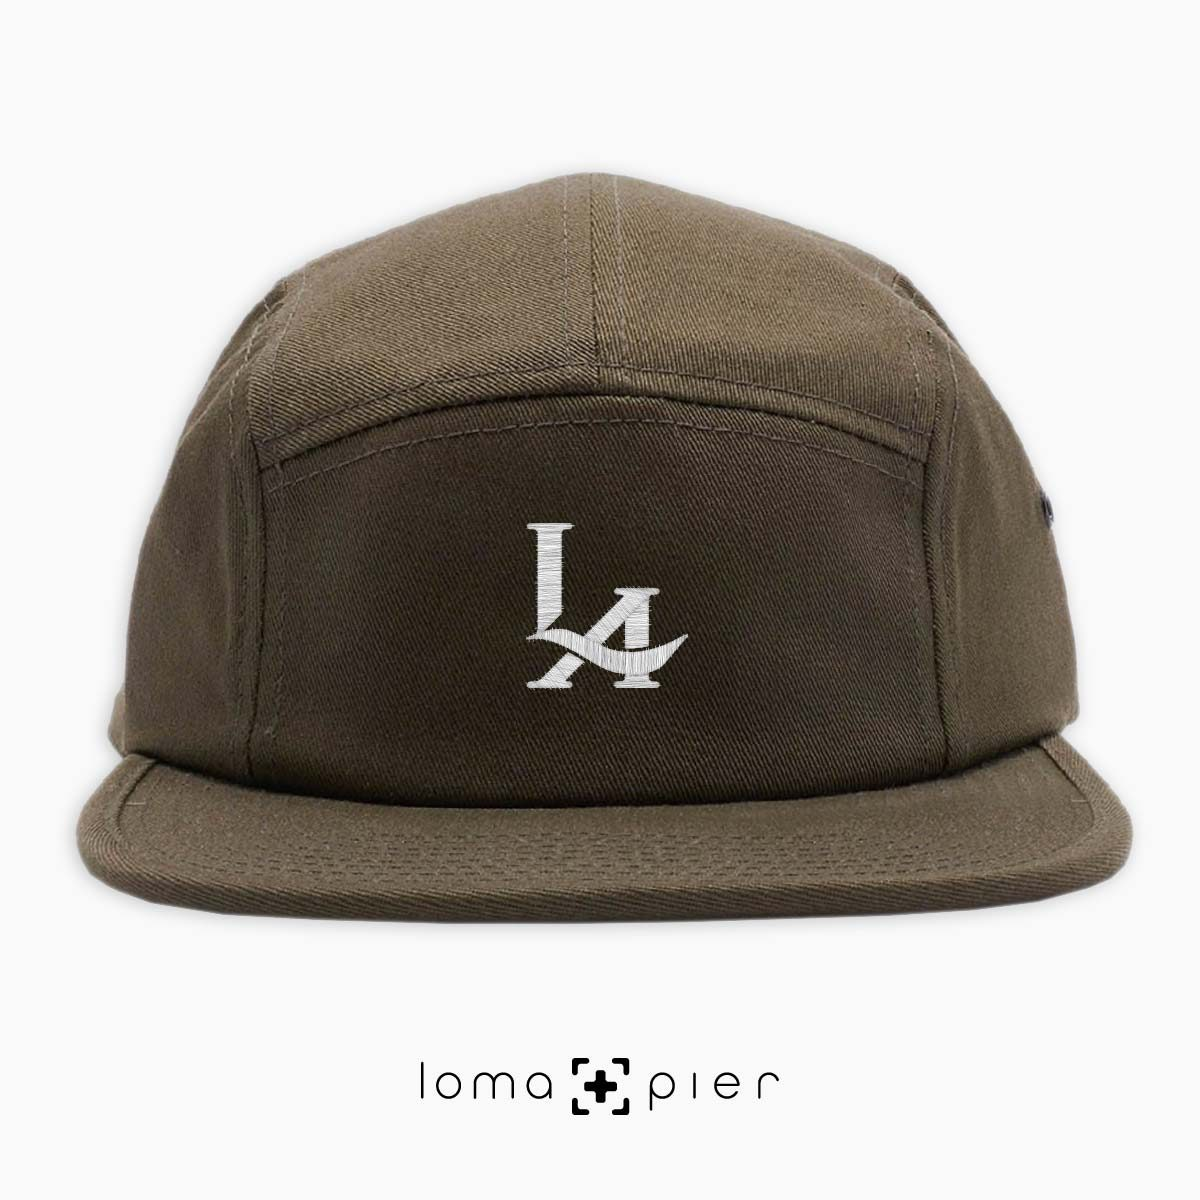 los angeles LA LOGO embroidered on an olive green cotton 5-panel hat by loma+pier hat store